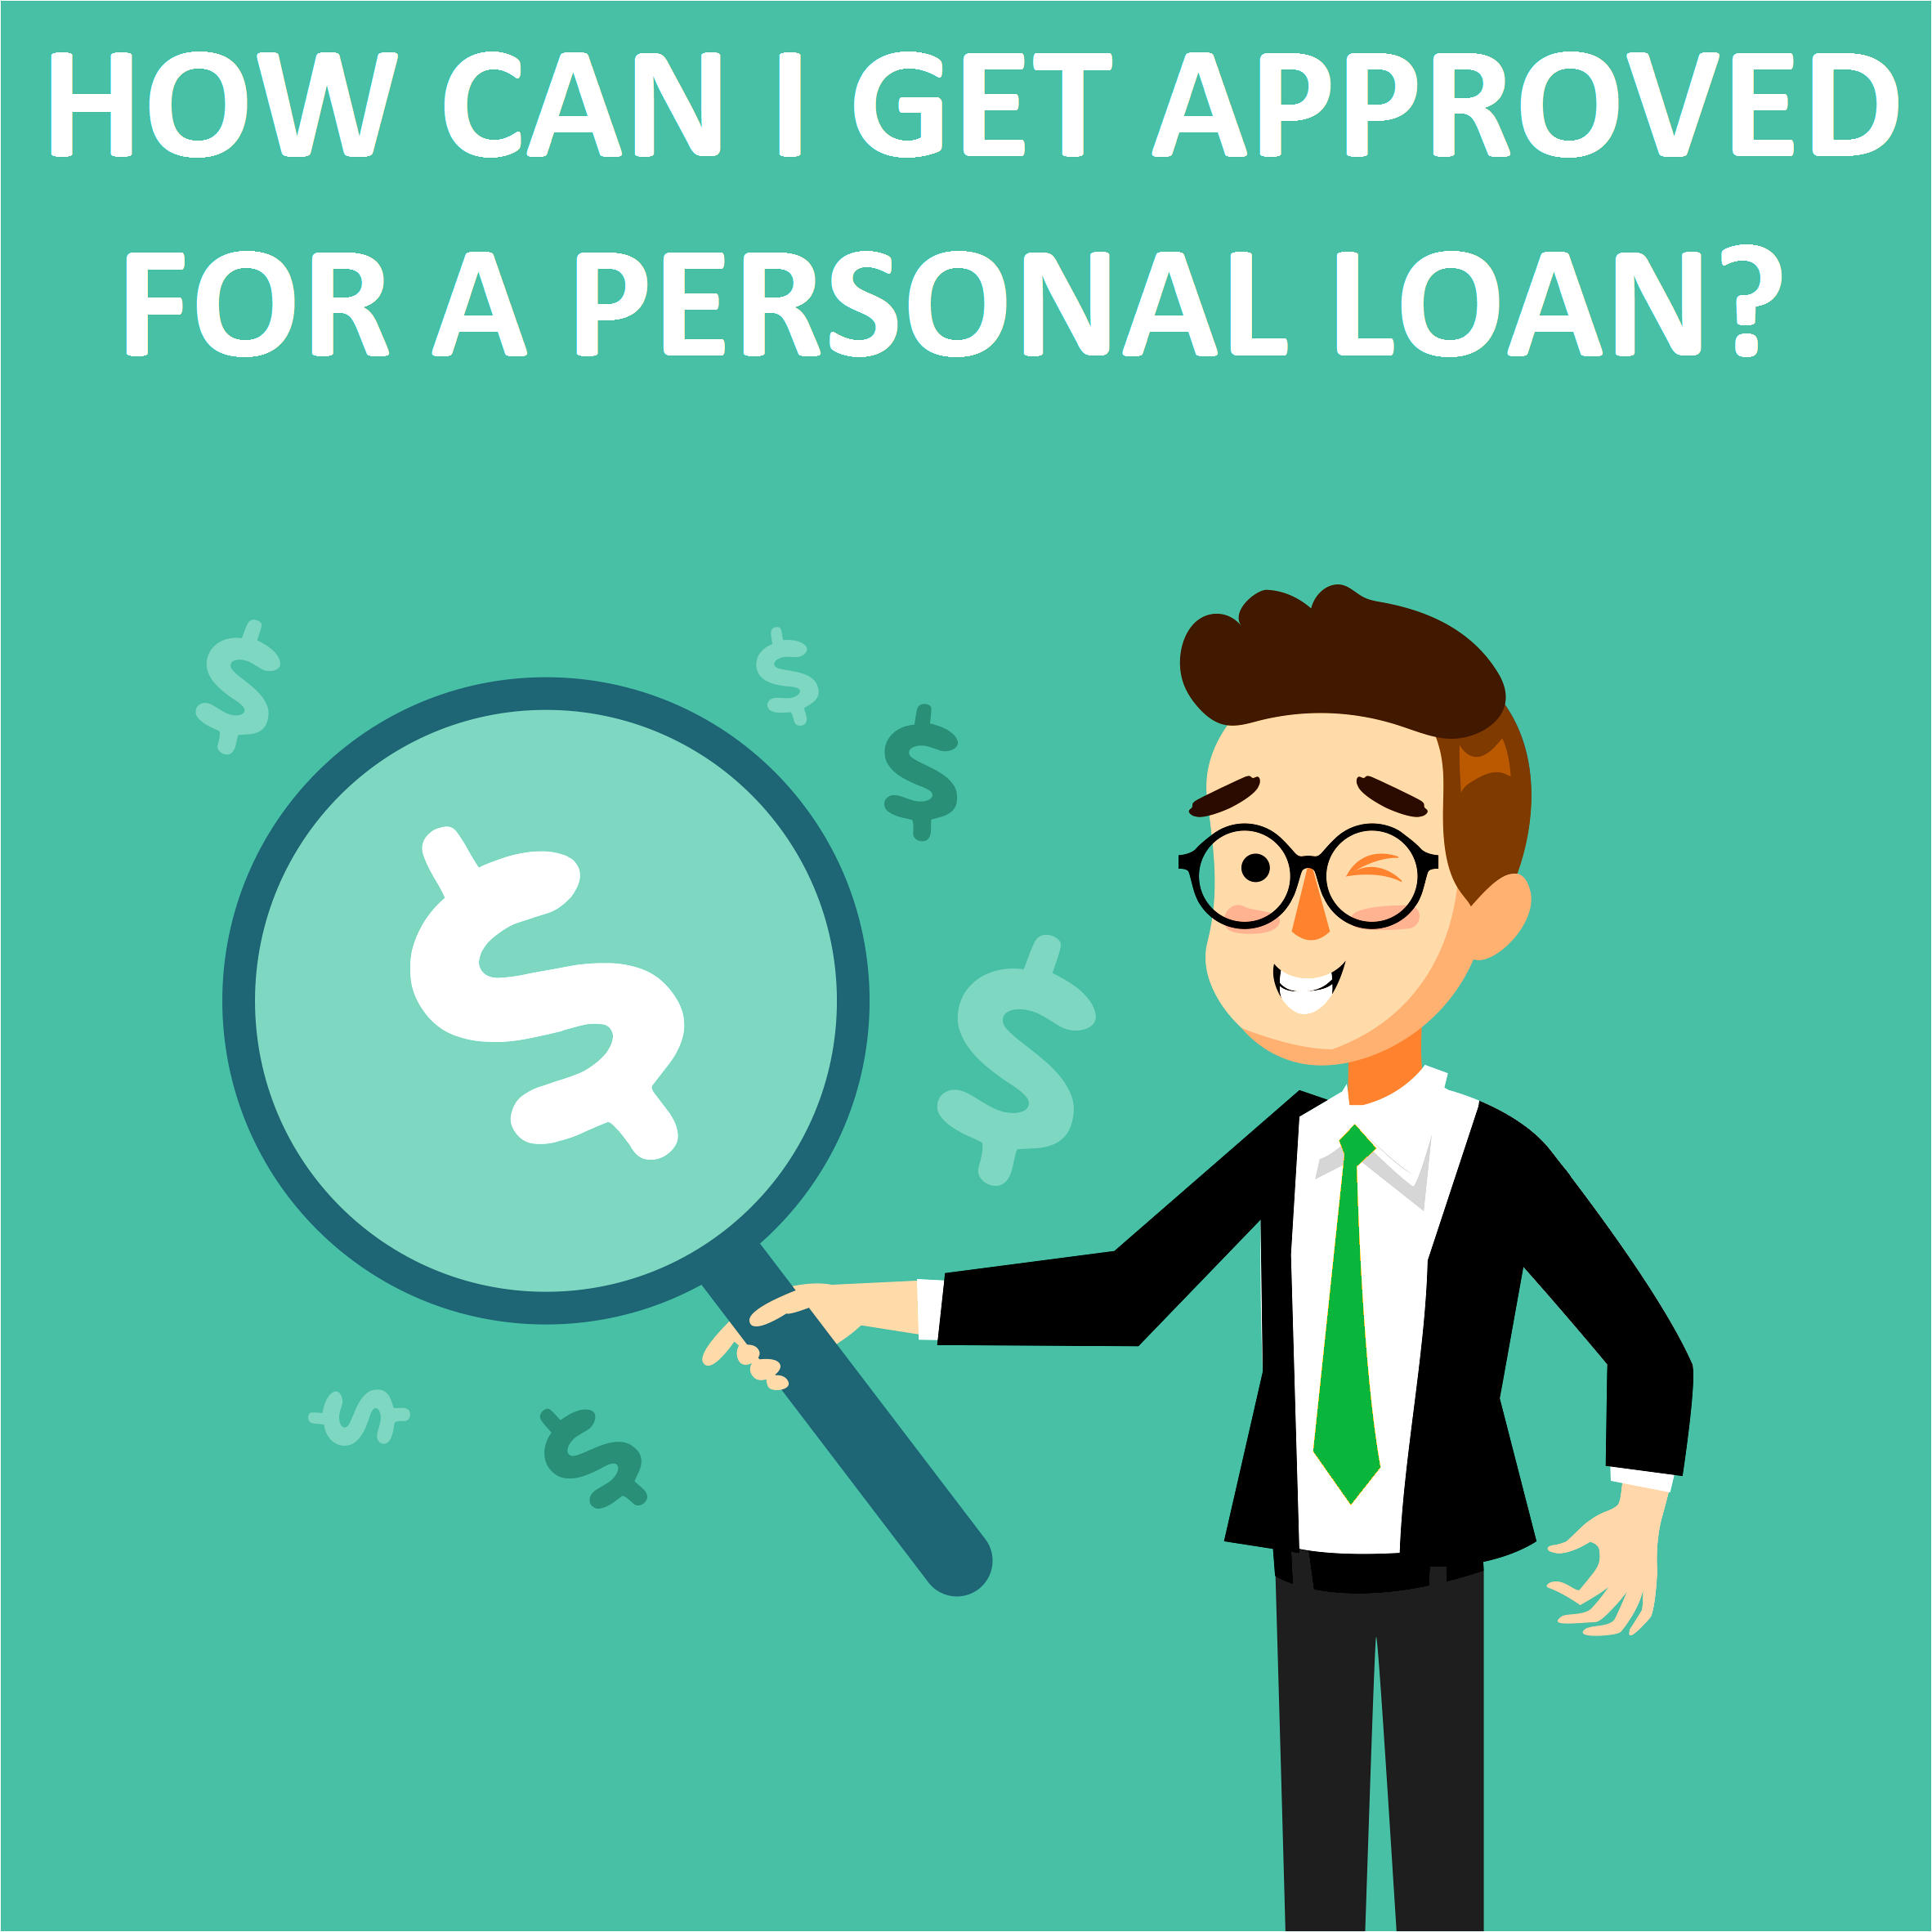 How Can I Get Approved For A Personal Loan?